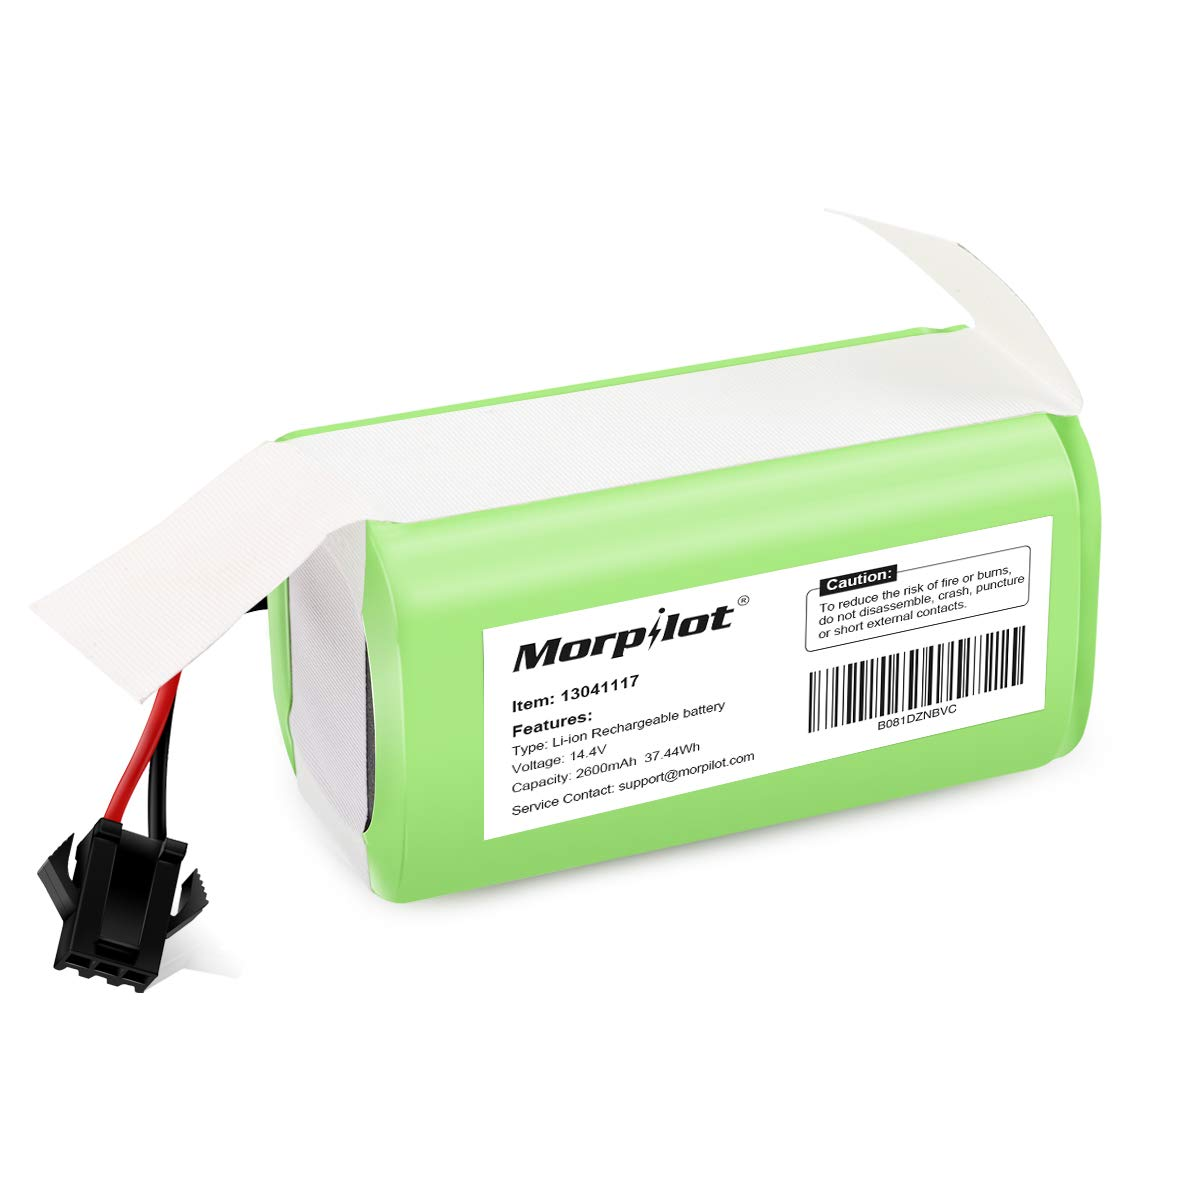 14.4v 2600mAh Li-ion Rechargeable Replacement Battery Compatible with Deebot N79S, RoboVac 11, 11S,11S MAX, 30, 15C, 15T, 12, 35C